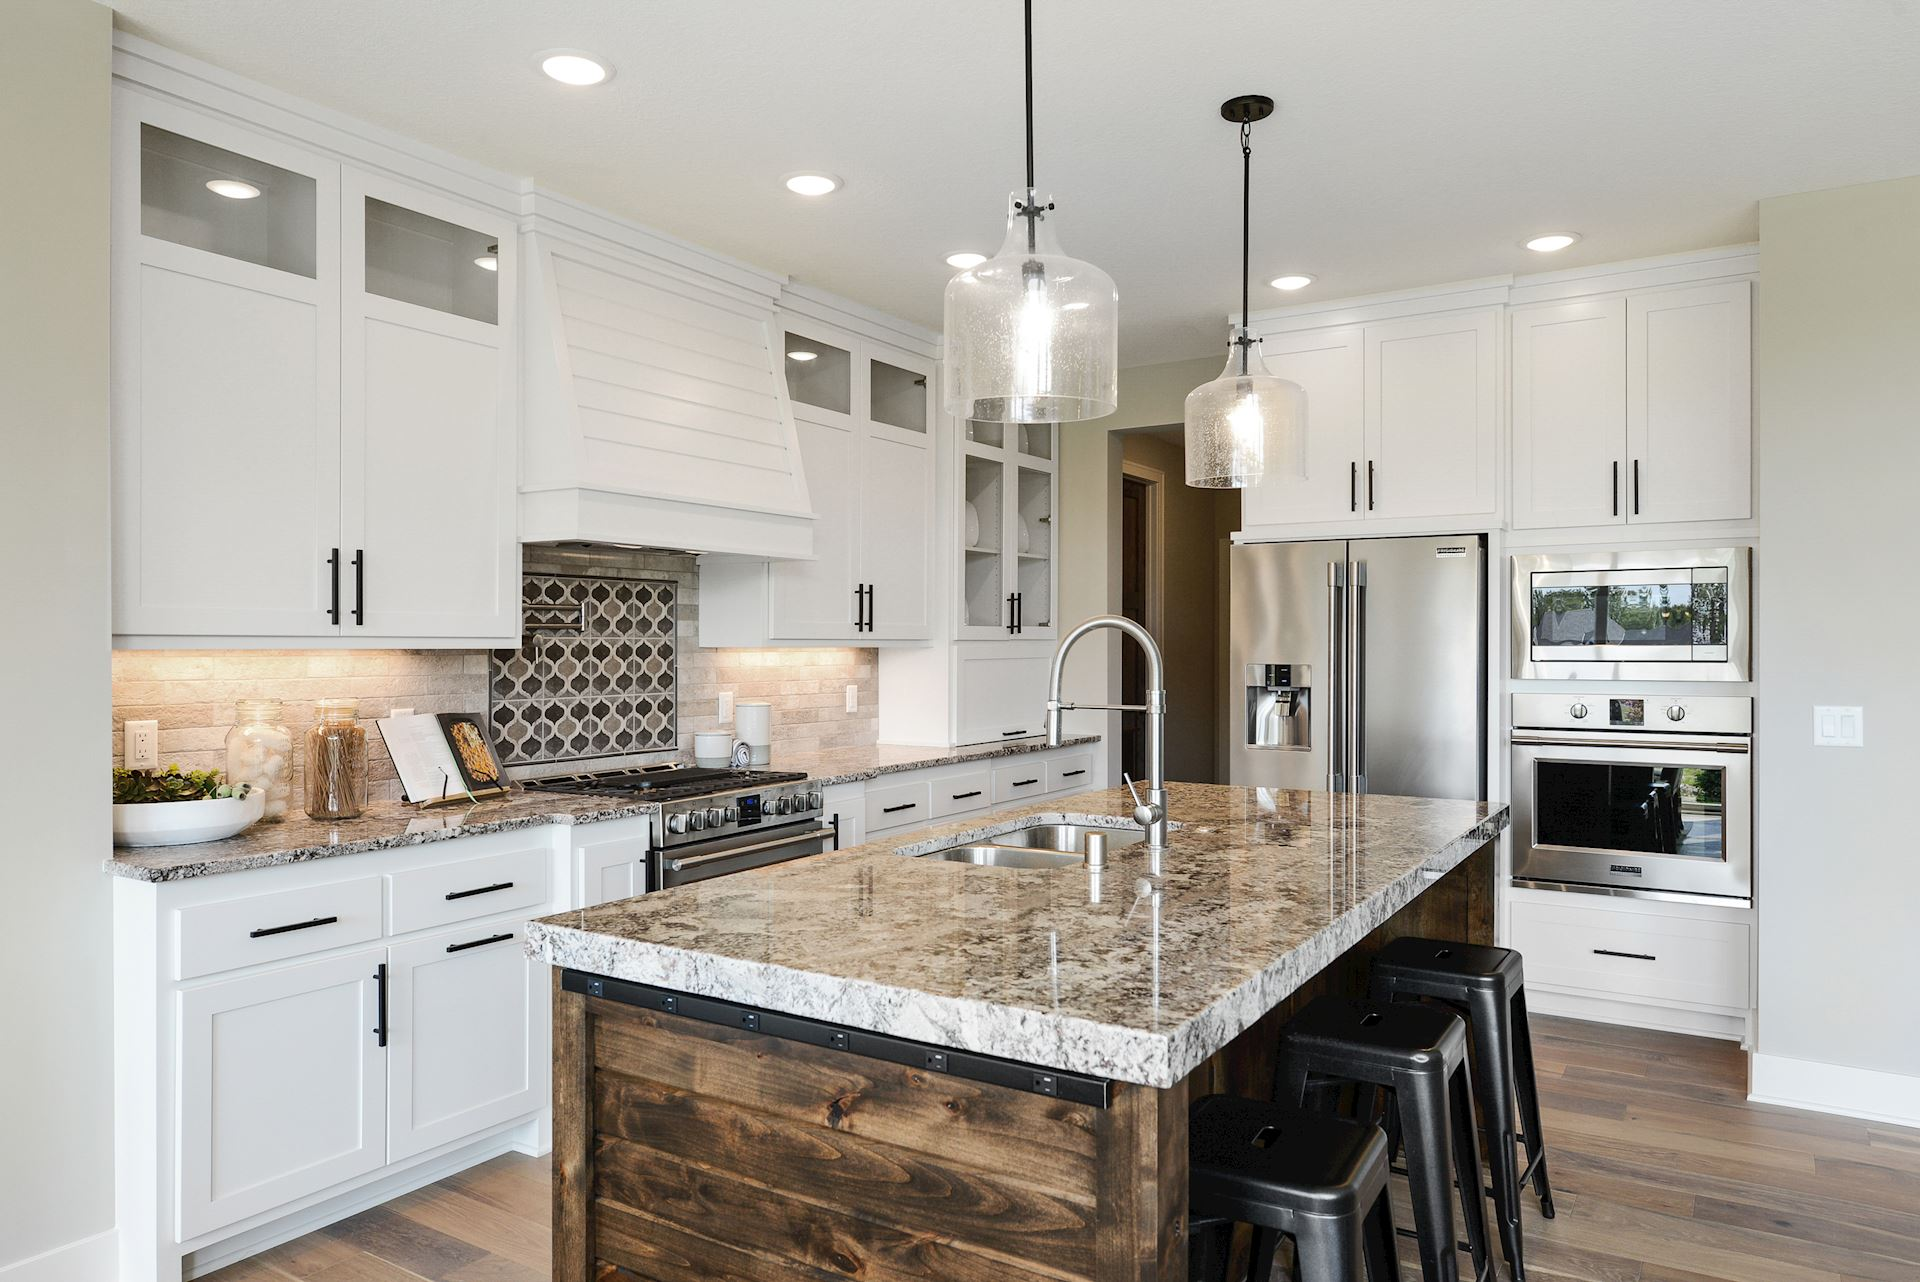 Granite surfaces and hardwood flooring